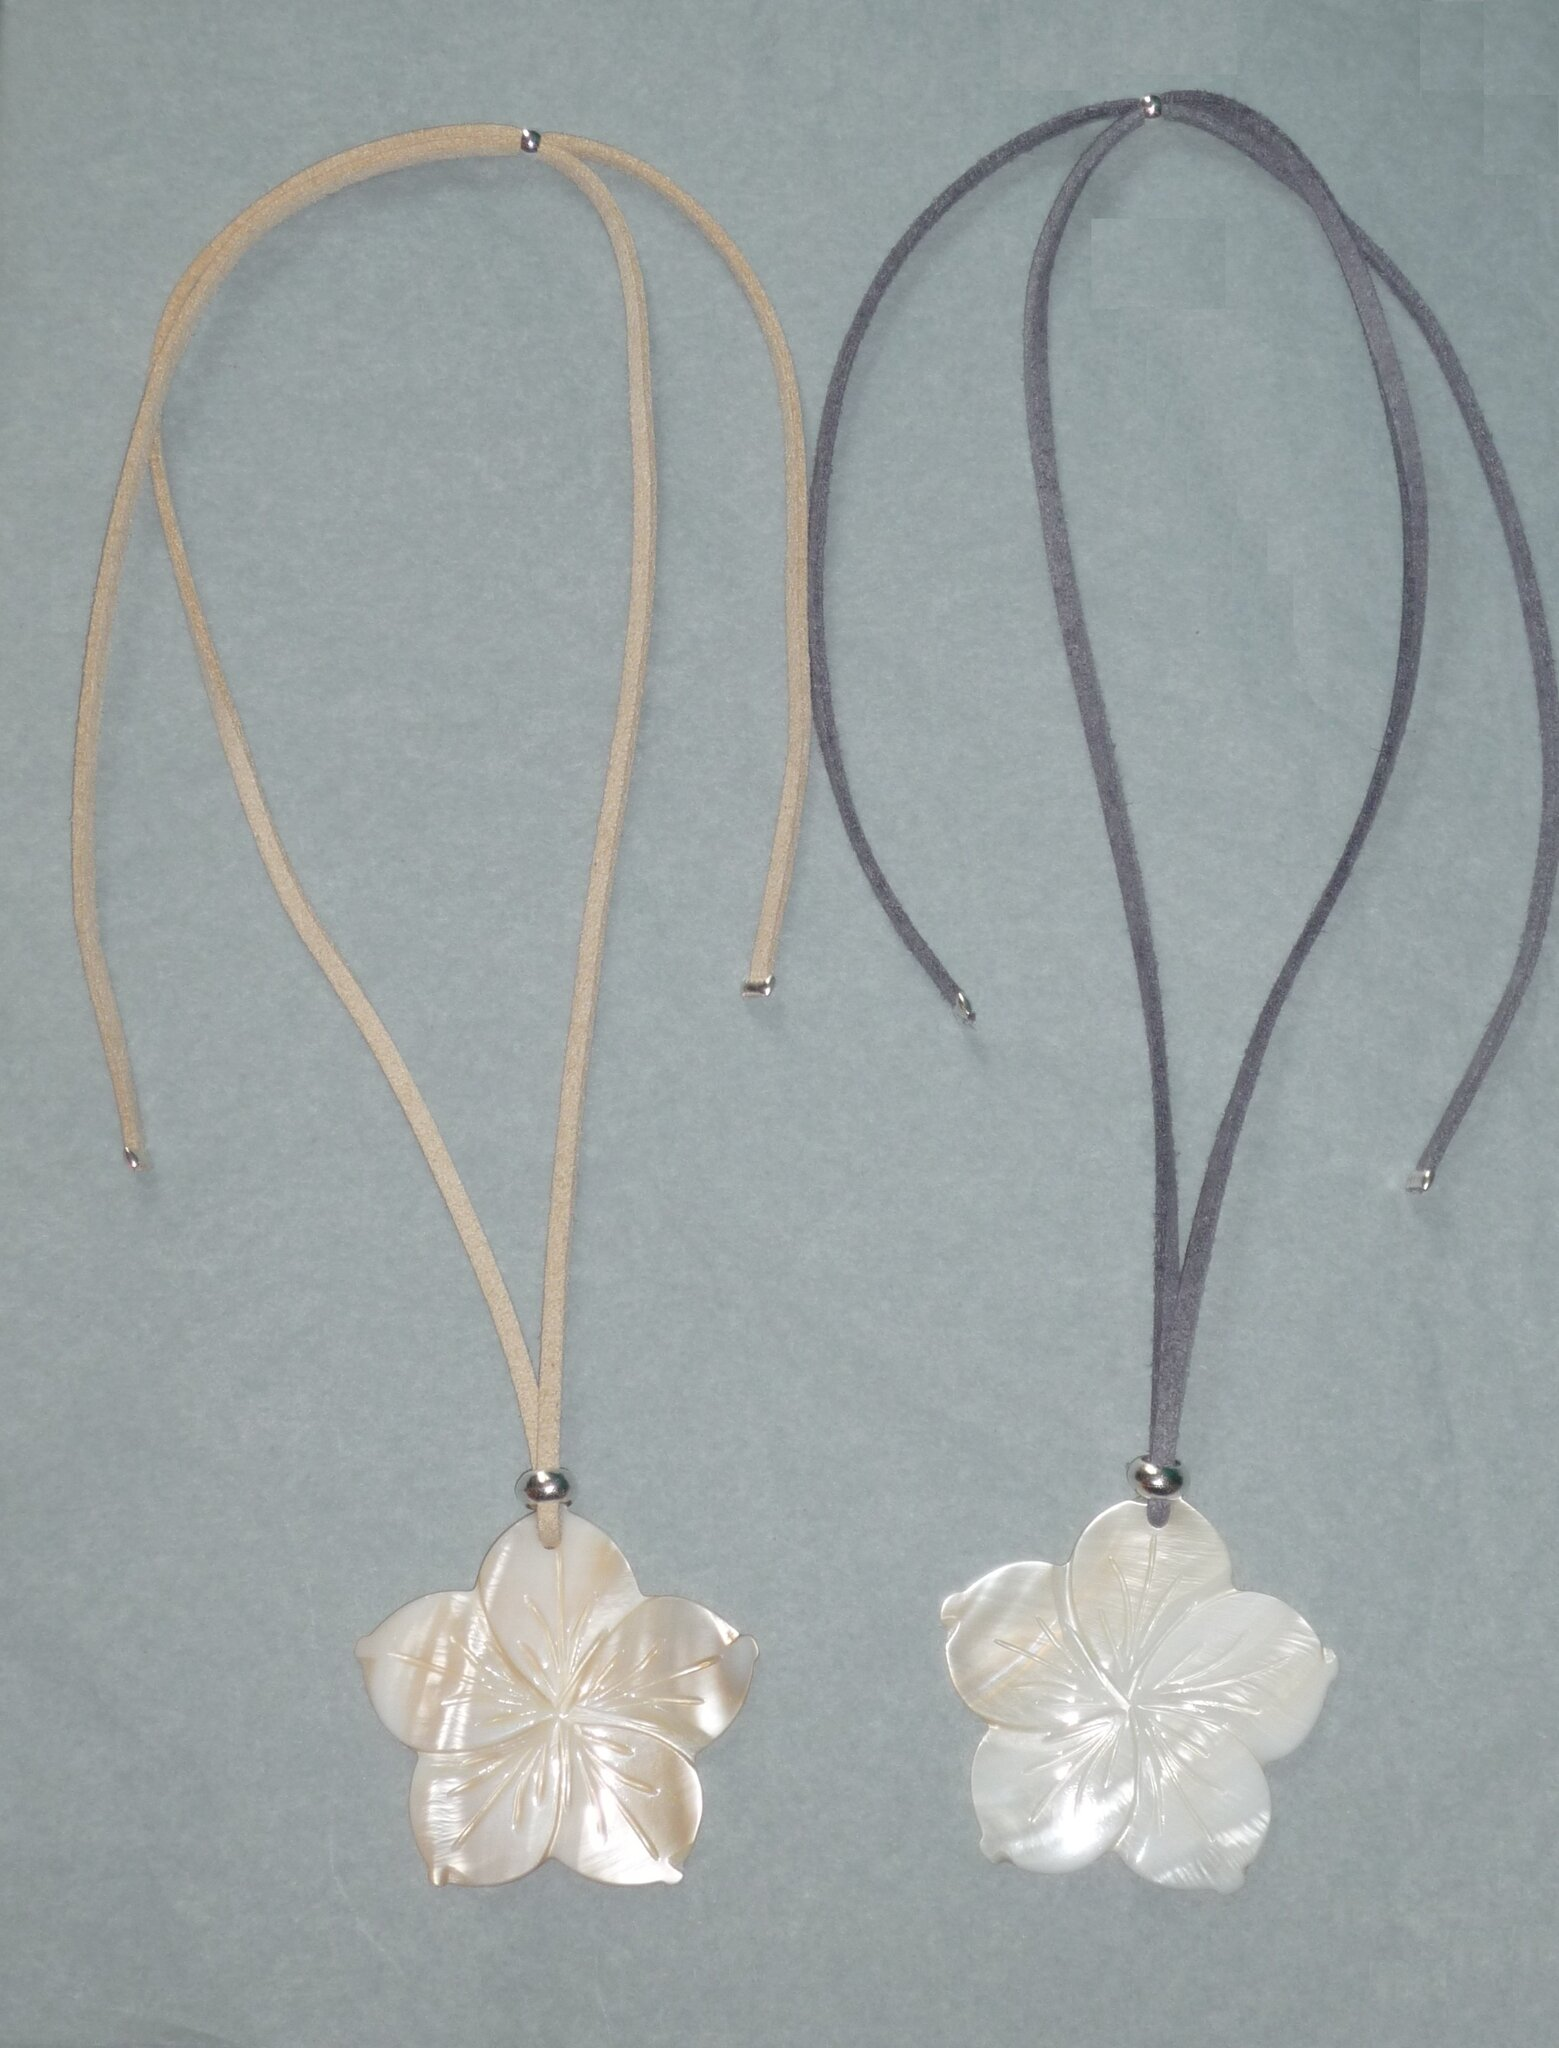 Collier Sautoir Nacre / Mother of Pearl Necklace